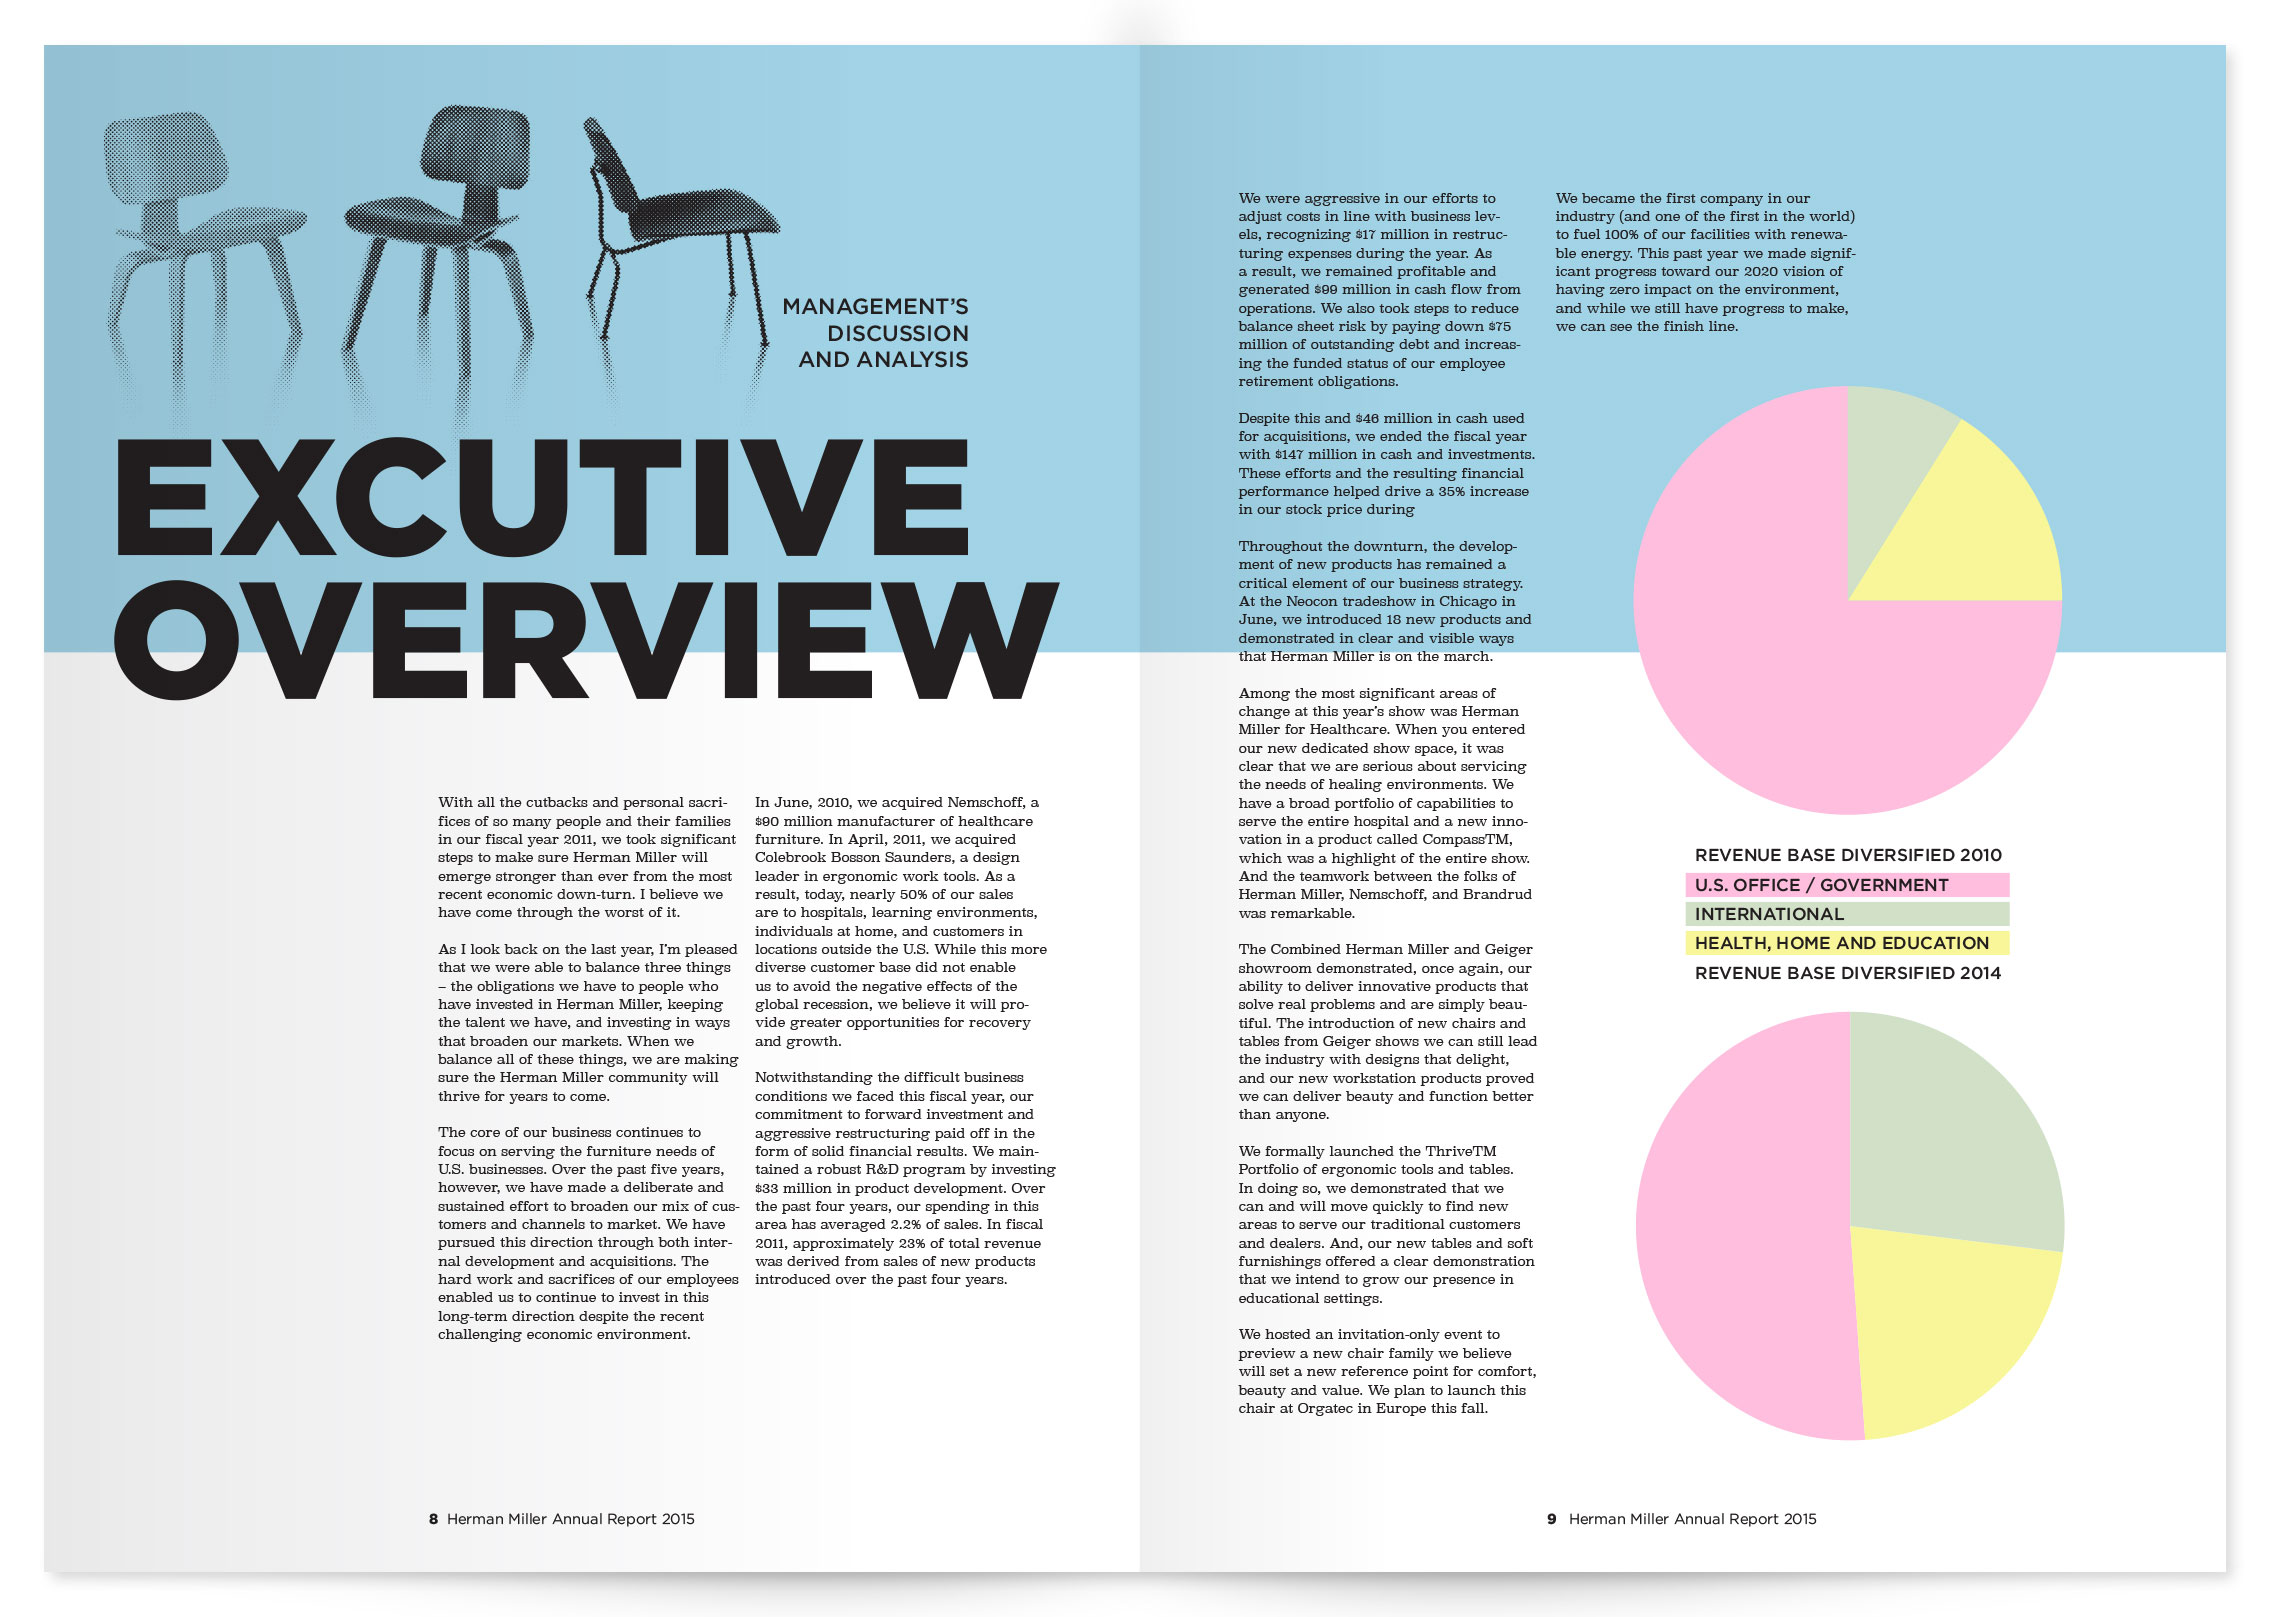 annual report interior spread with info graphic